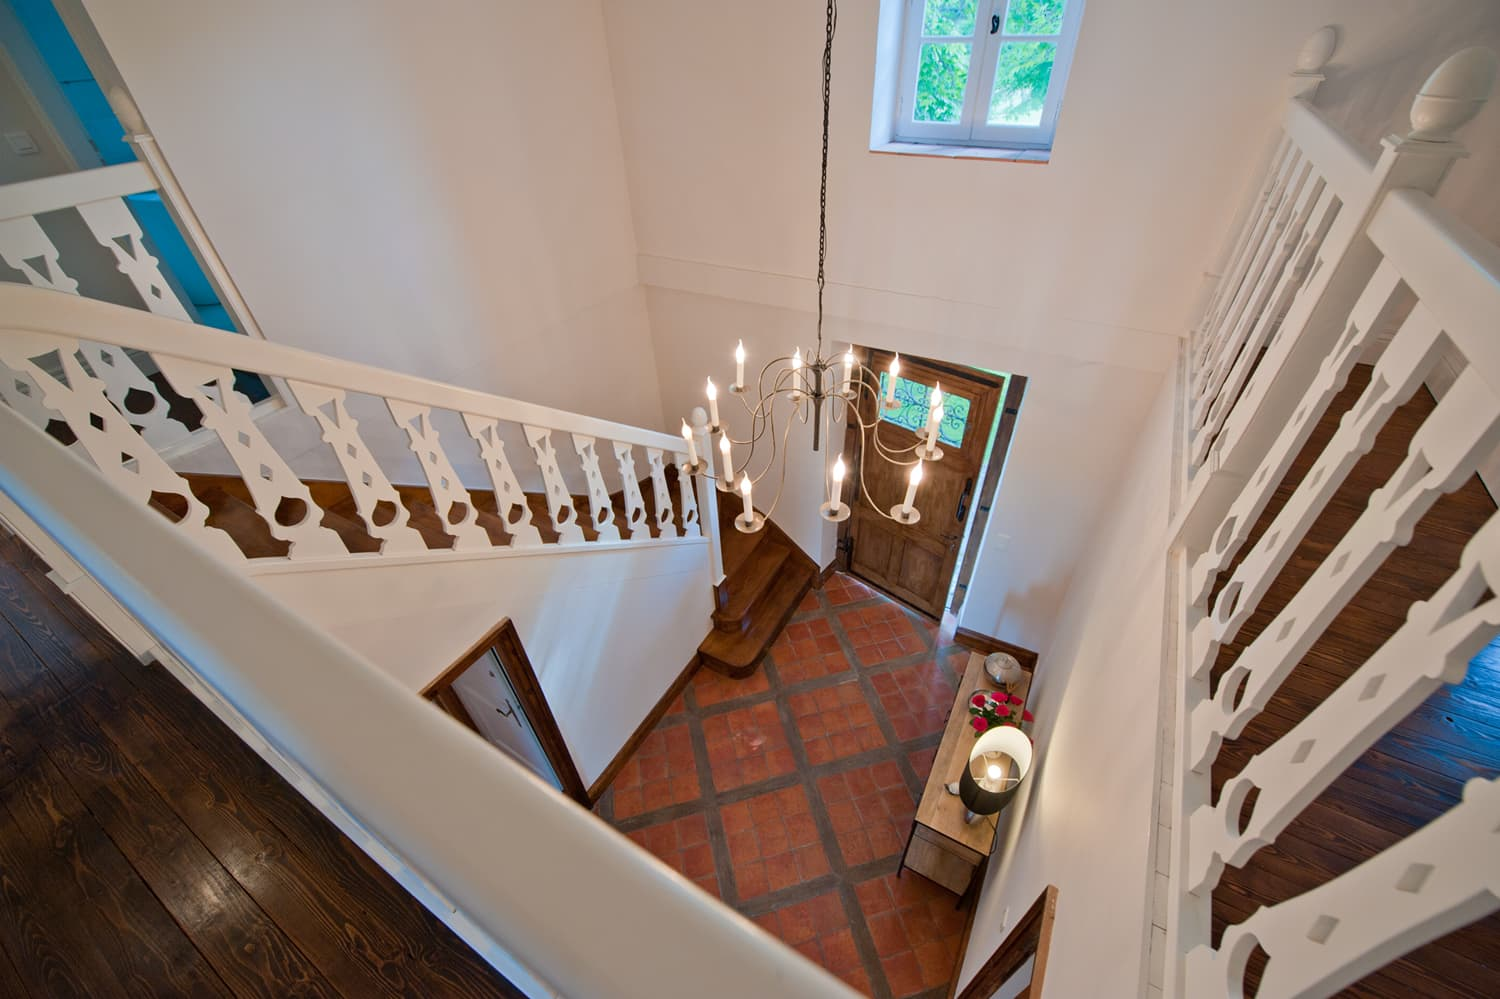 Staircase and entrance in Dordogne rental home